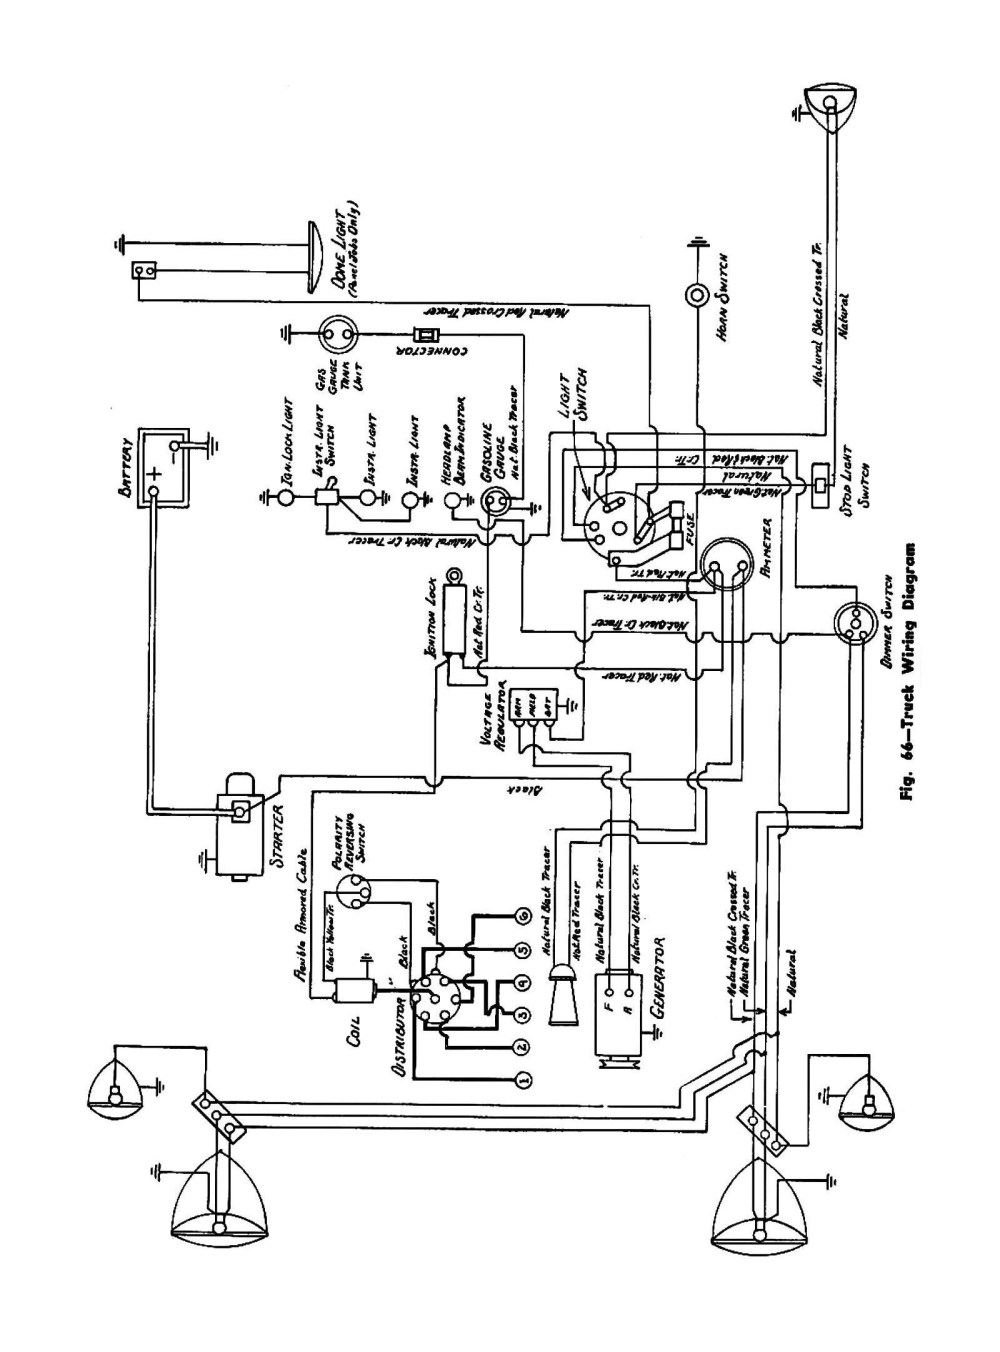 medium resolution of 1954 dodge truck wiring harness wiring diagram paper 1953 truck wiring 1954 1954 car wiring 1954 truck wiring